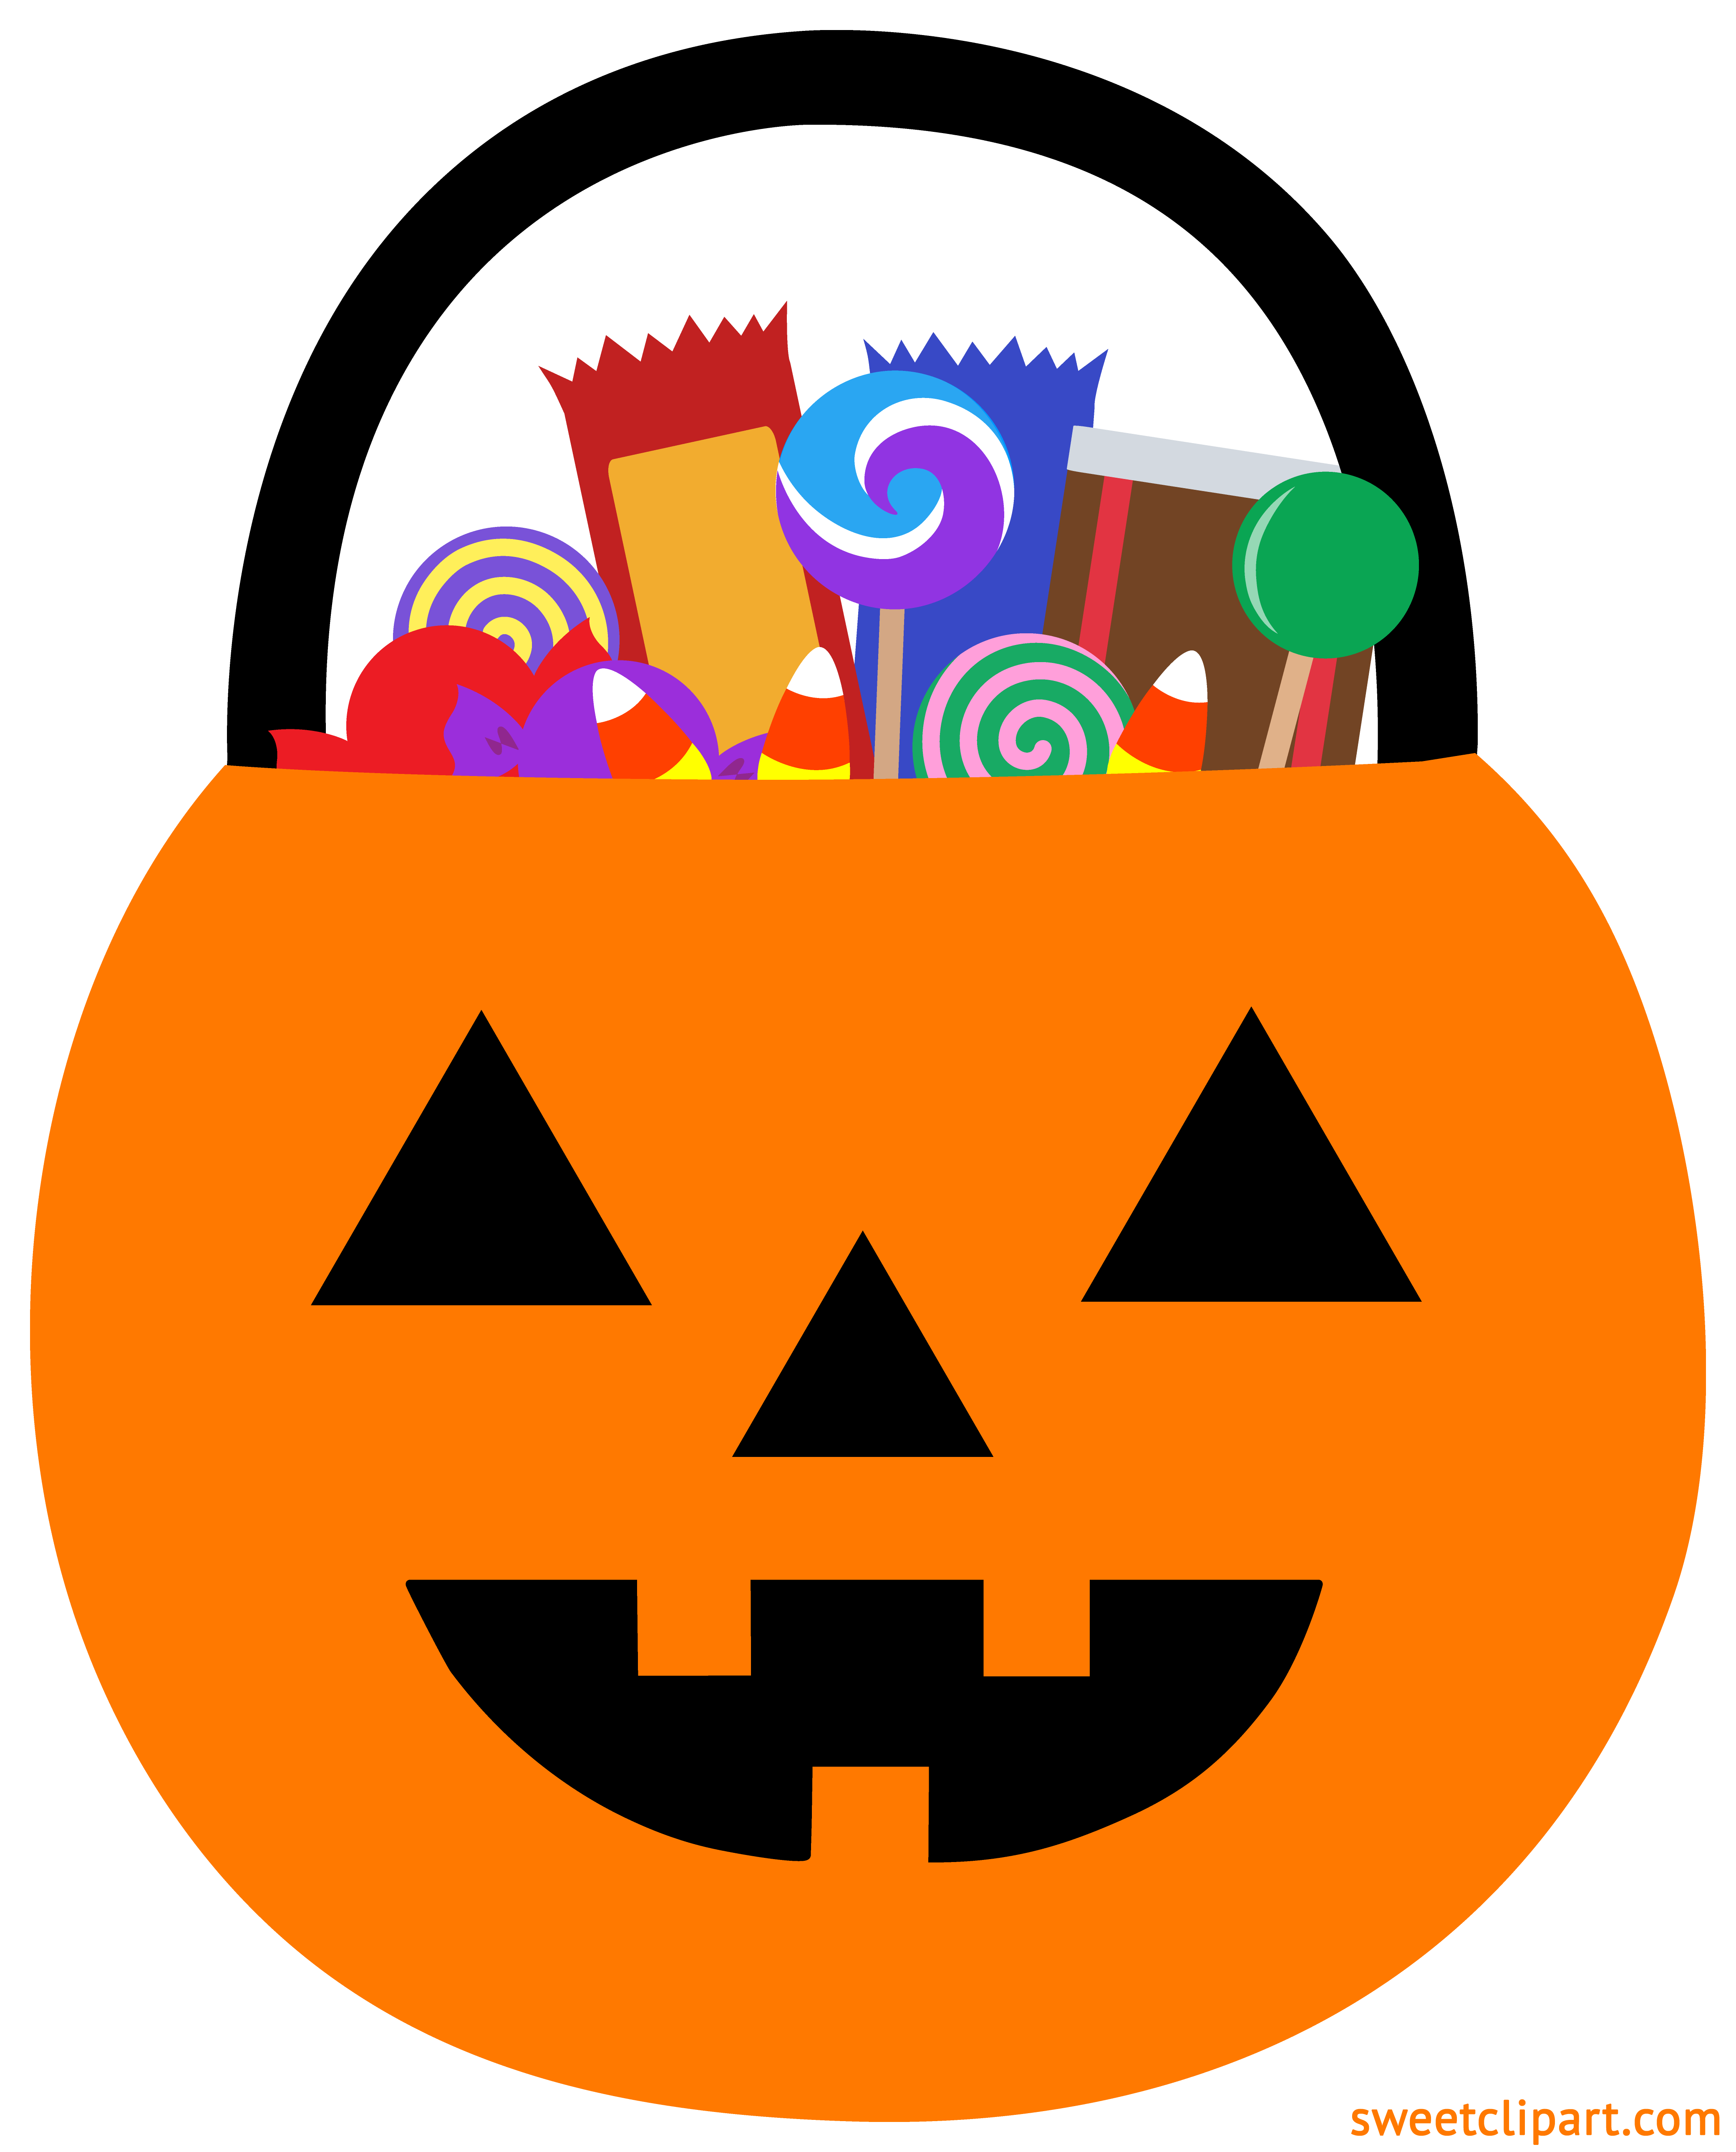 svg free download Halloween Pumpkin Pail With Candy